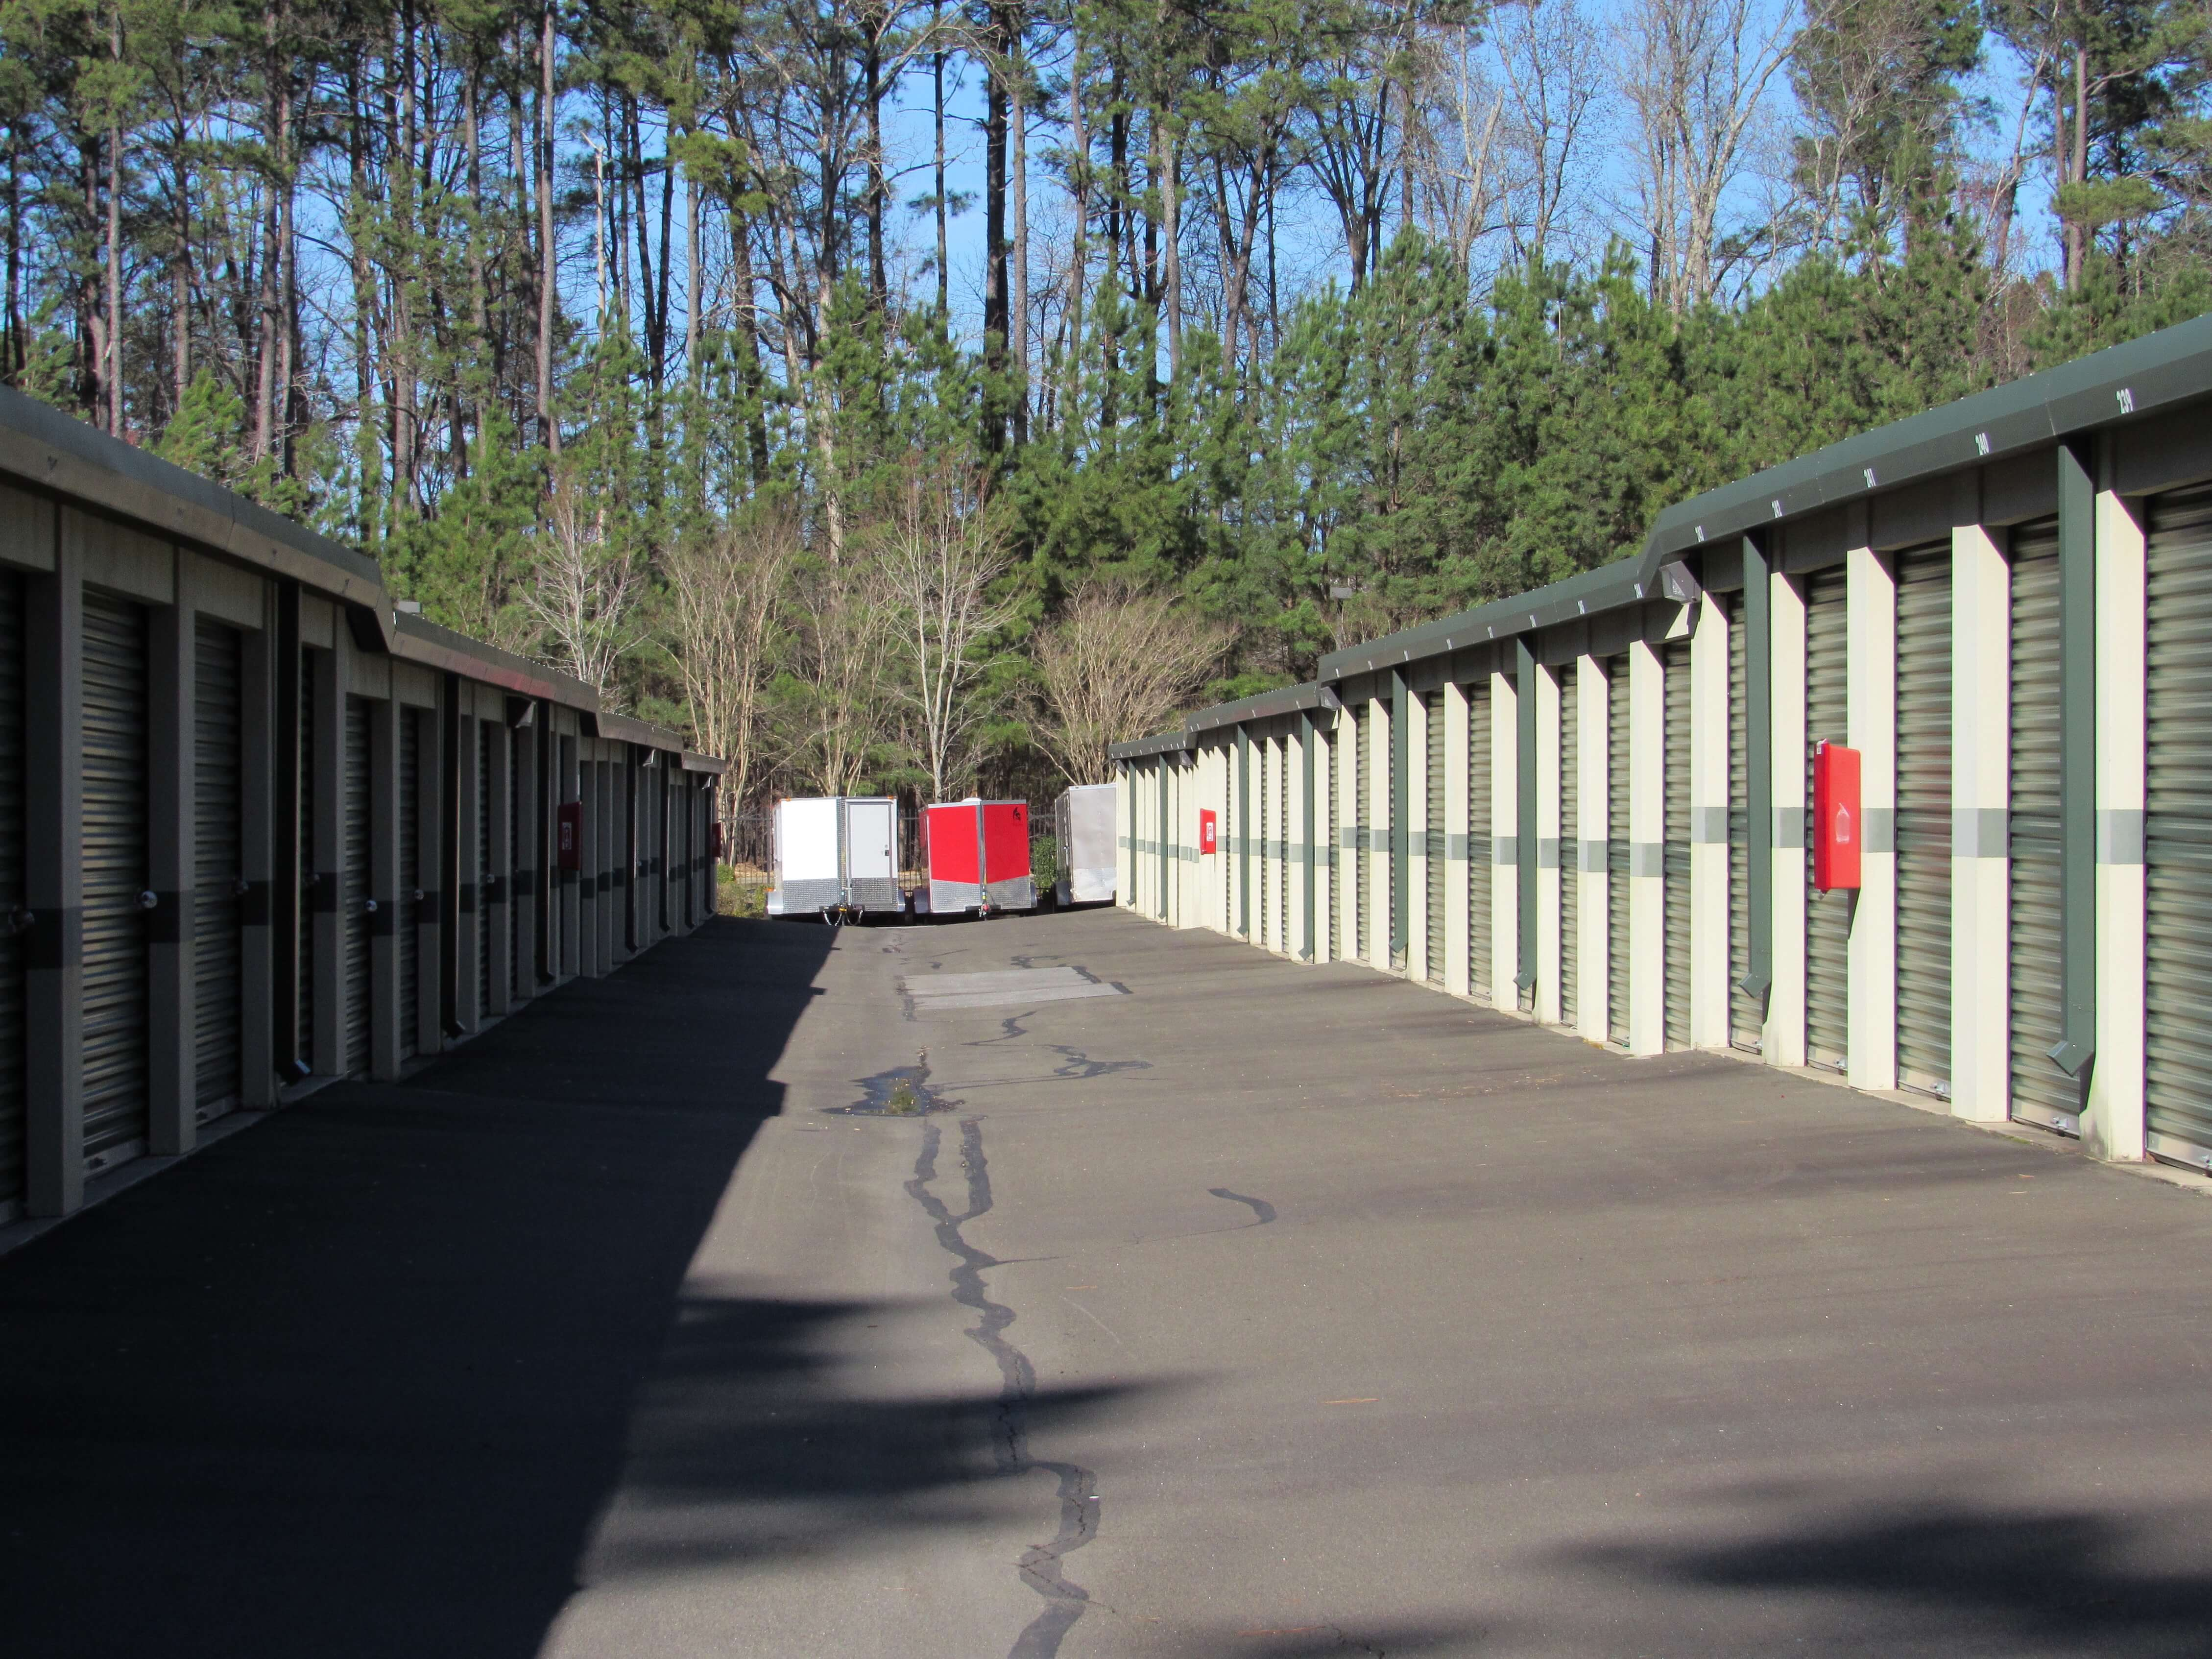 Outside row of storage units at Smart Stop self storage facility located at 150 Airport Blvd, Morrisville North Carolina